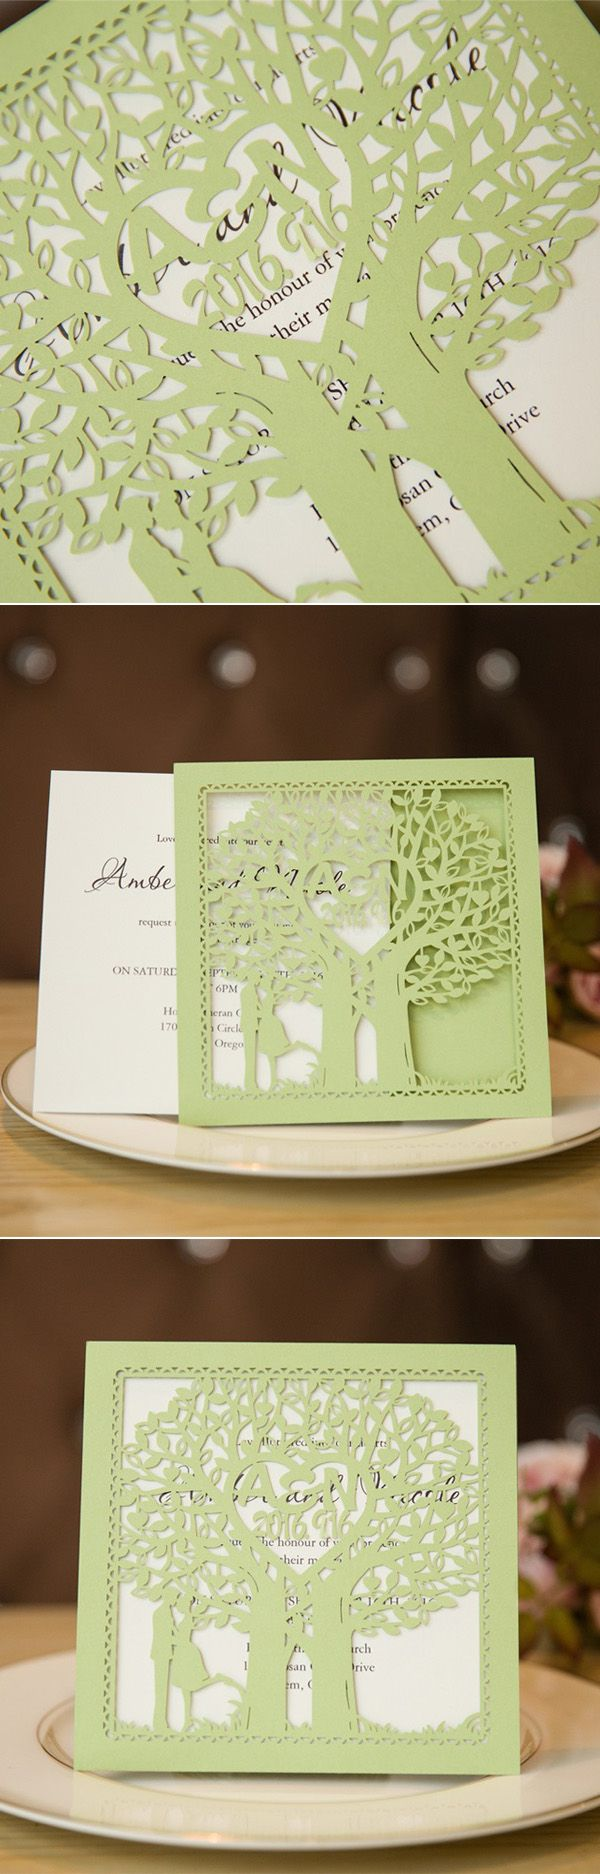 418 Best Wedding Invitations Laser Cut Images On Pinterest Cake